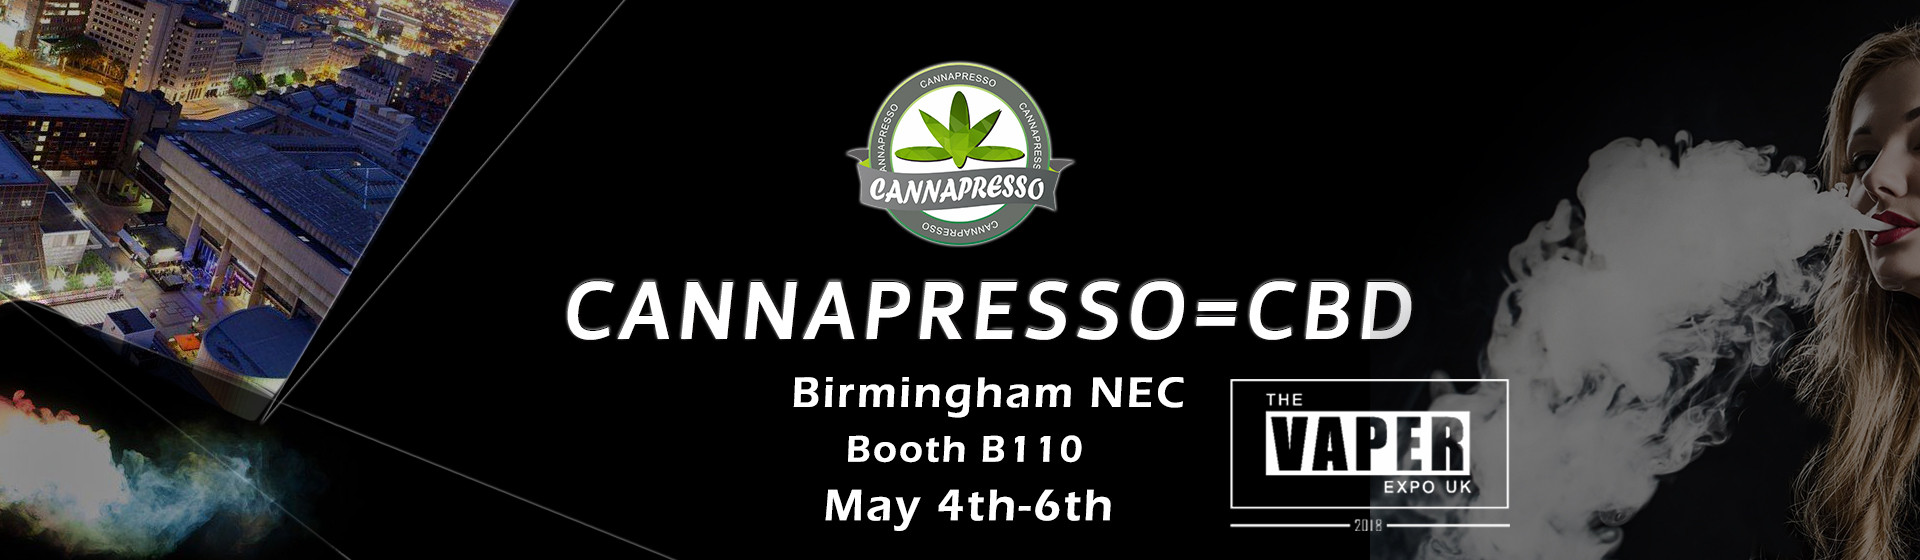 Cannapresso CBD the vaper expo UK